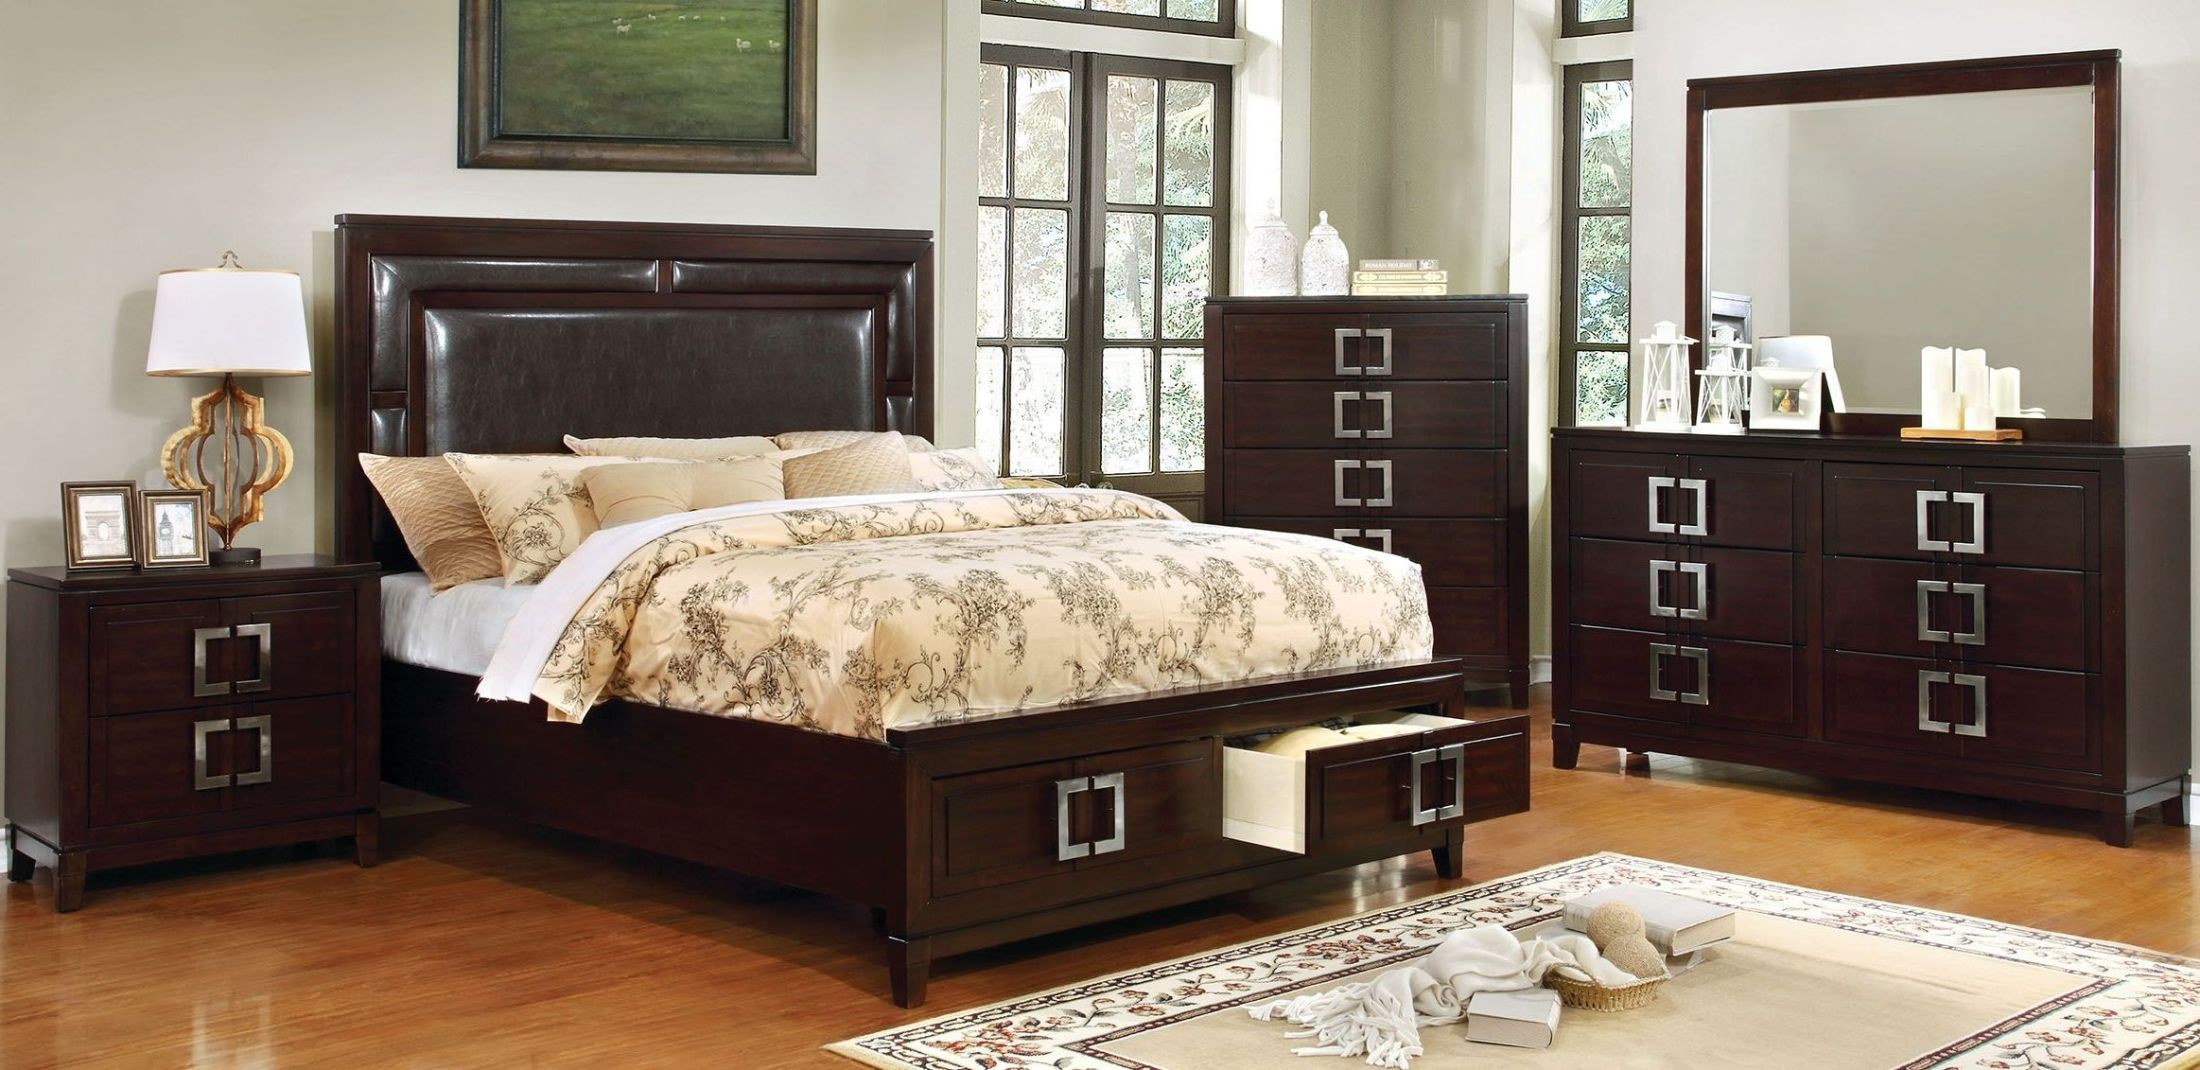 Balfour Brown Cherry Panel Storage Bedroom Set From Furniture Of America Coleman Furniture